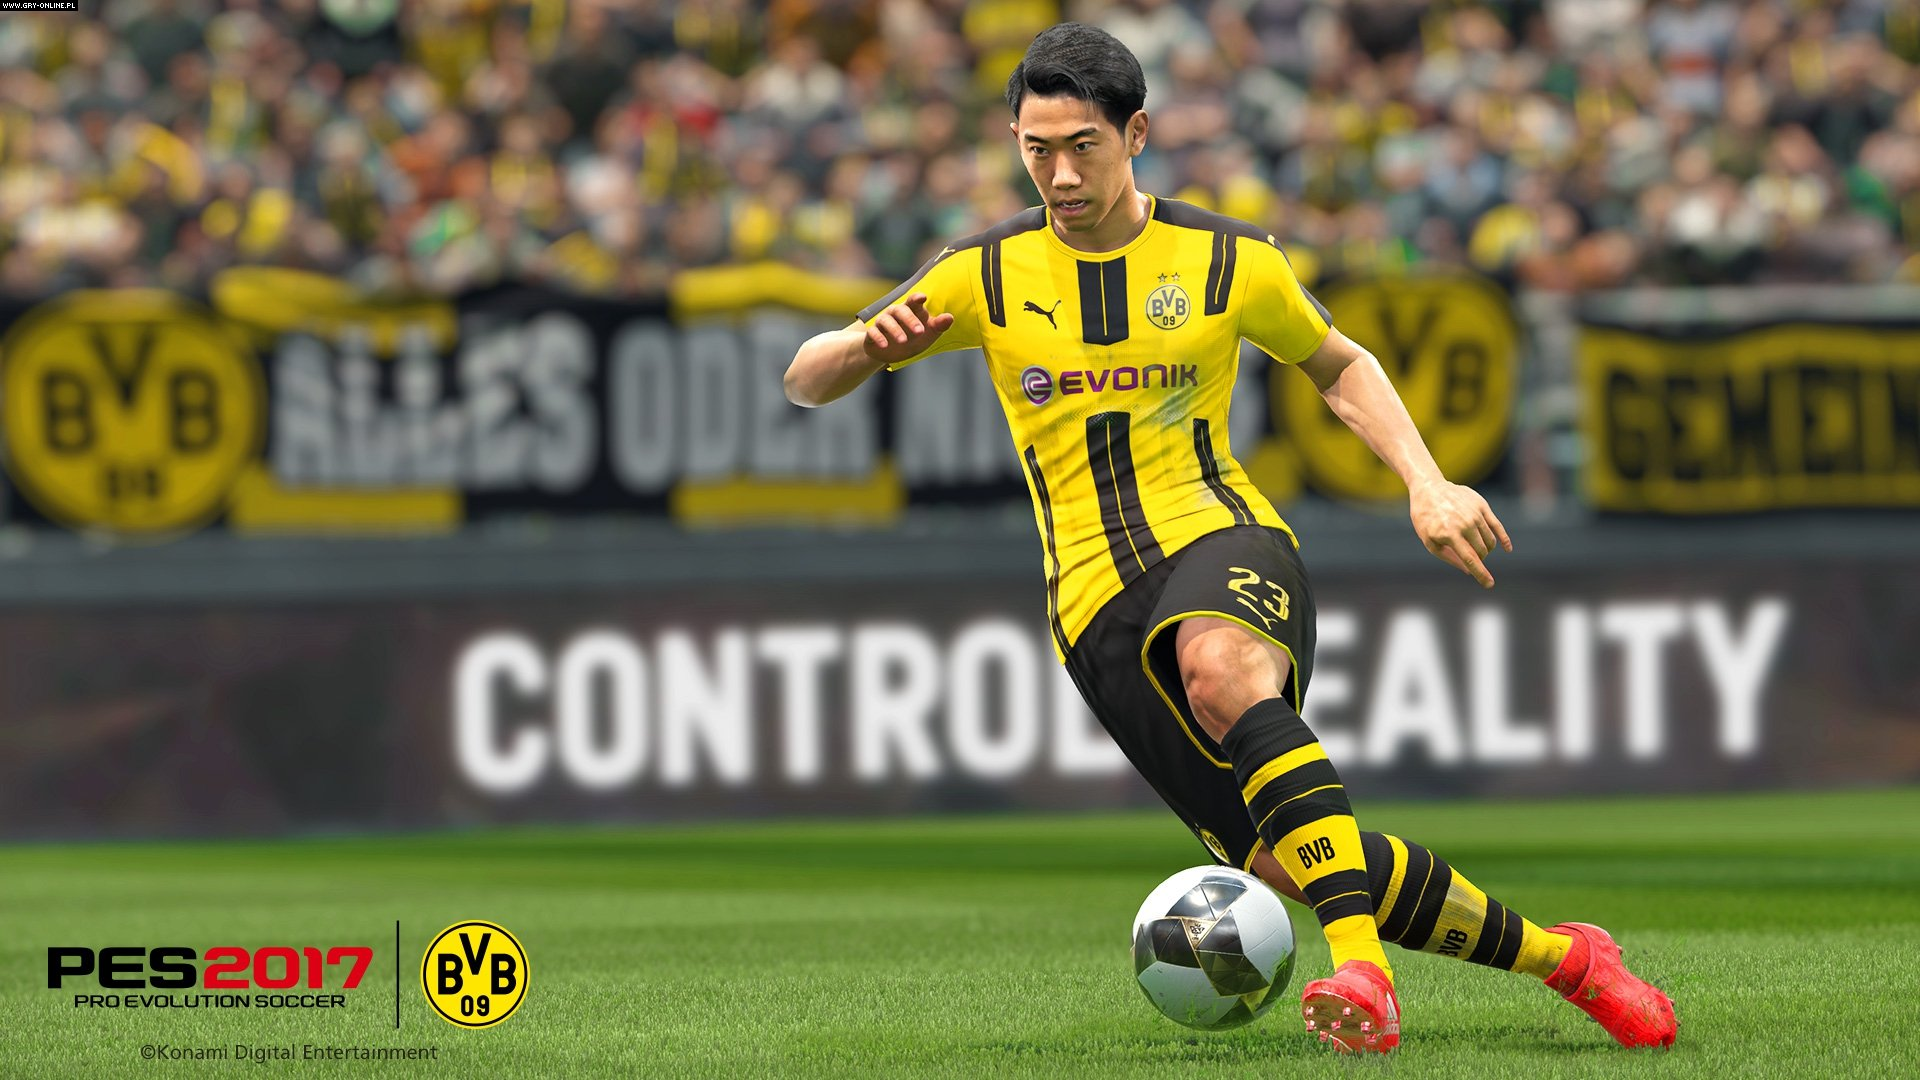 Pro Evolution Soccer 2017 PC, PS4, XONE Games Image 11/39, Konami